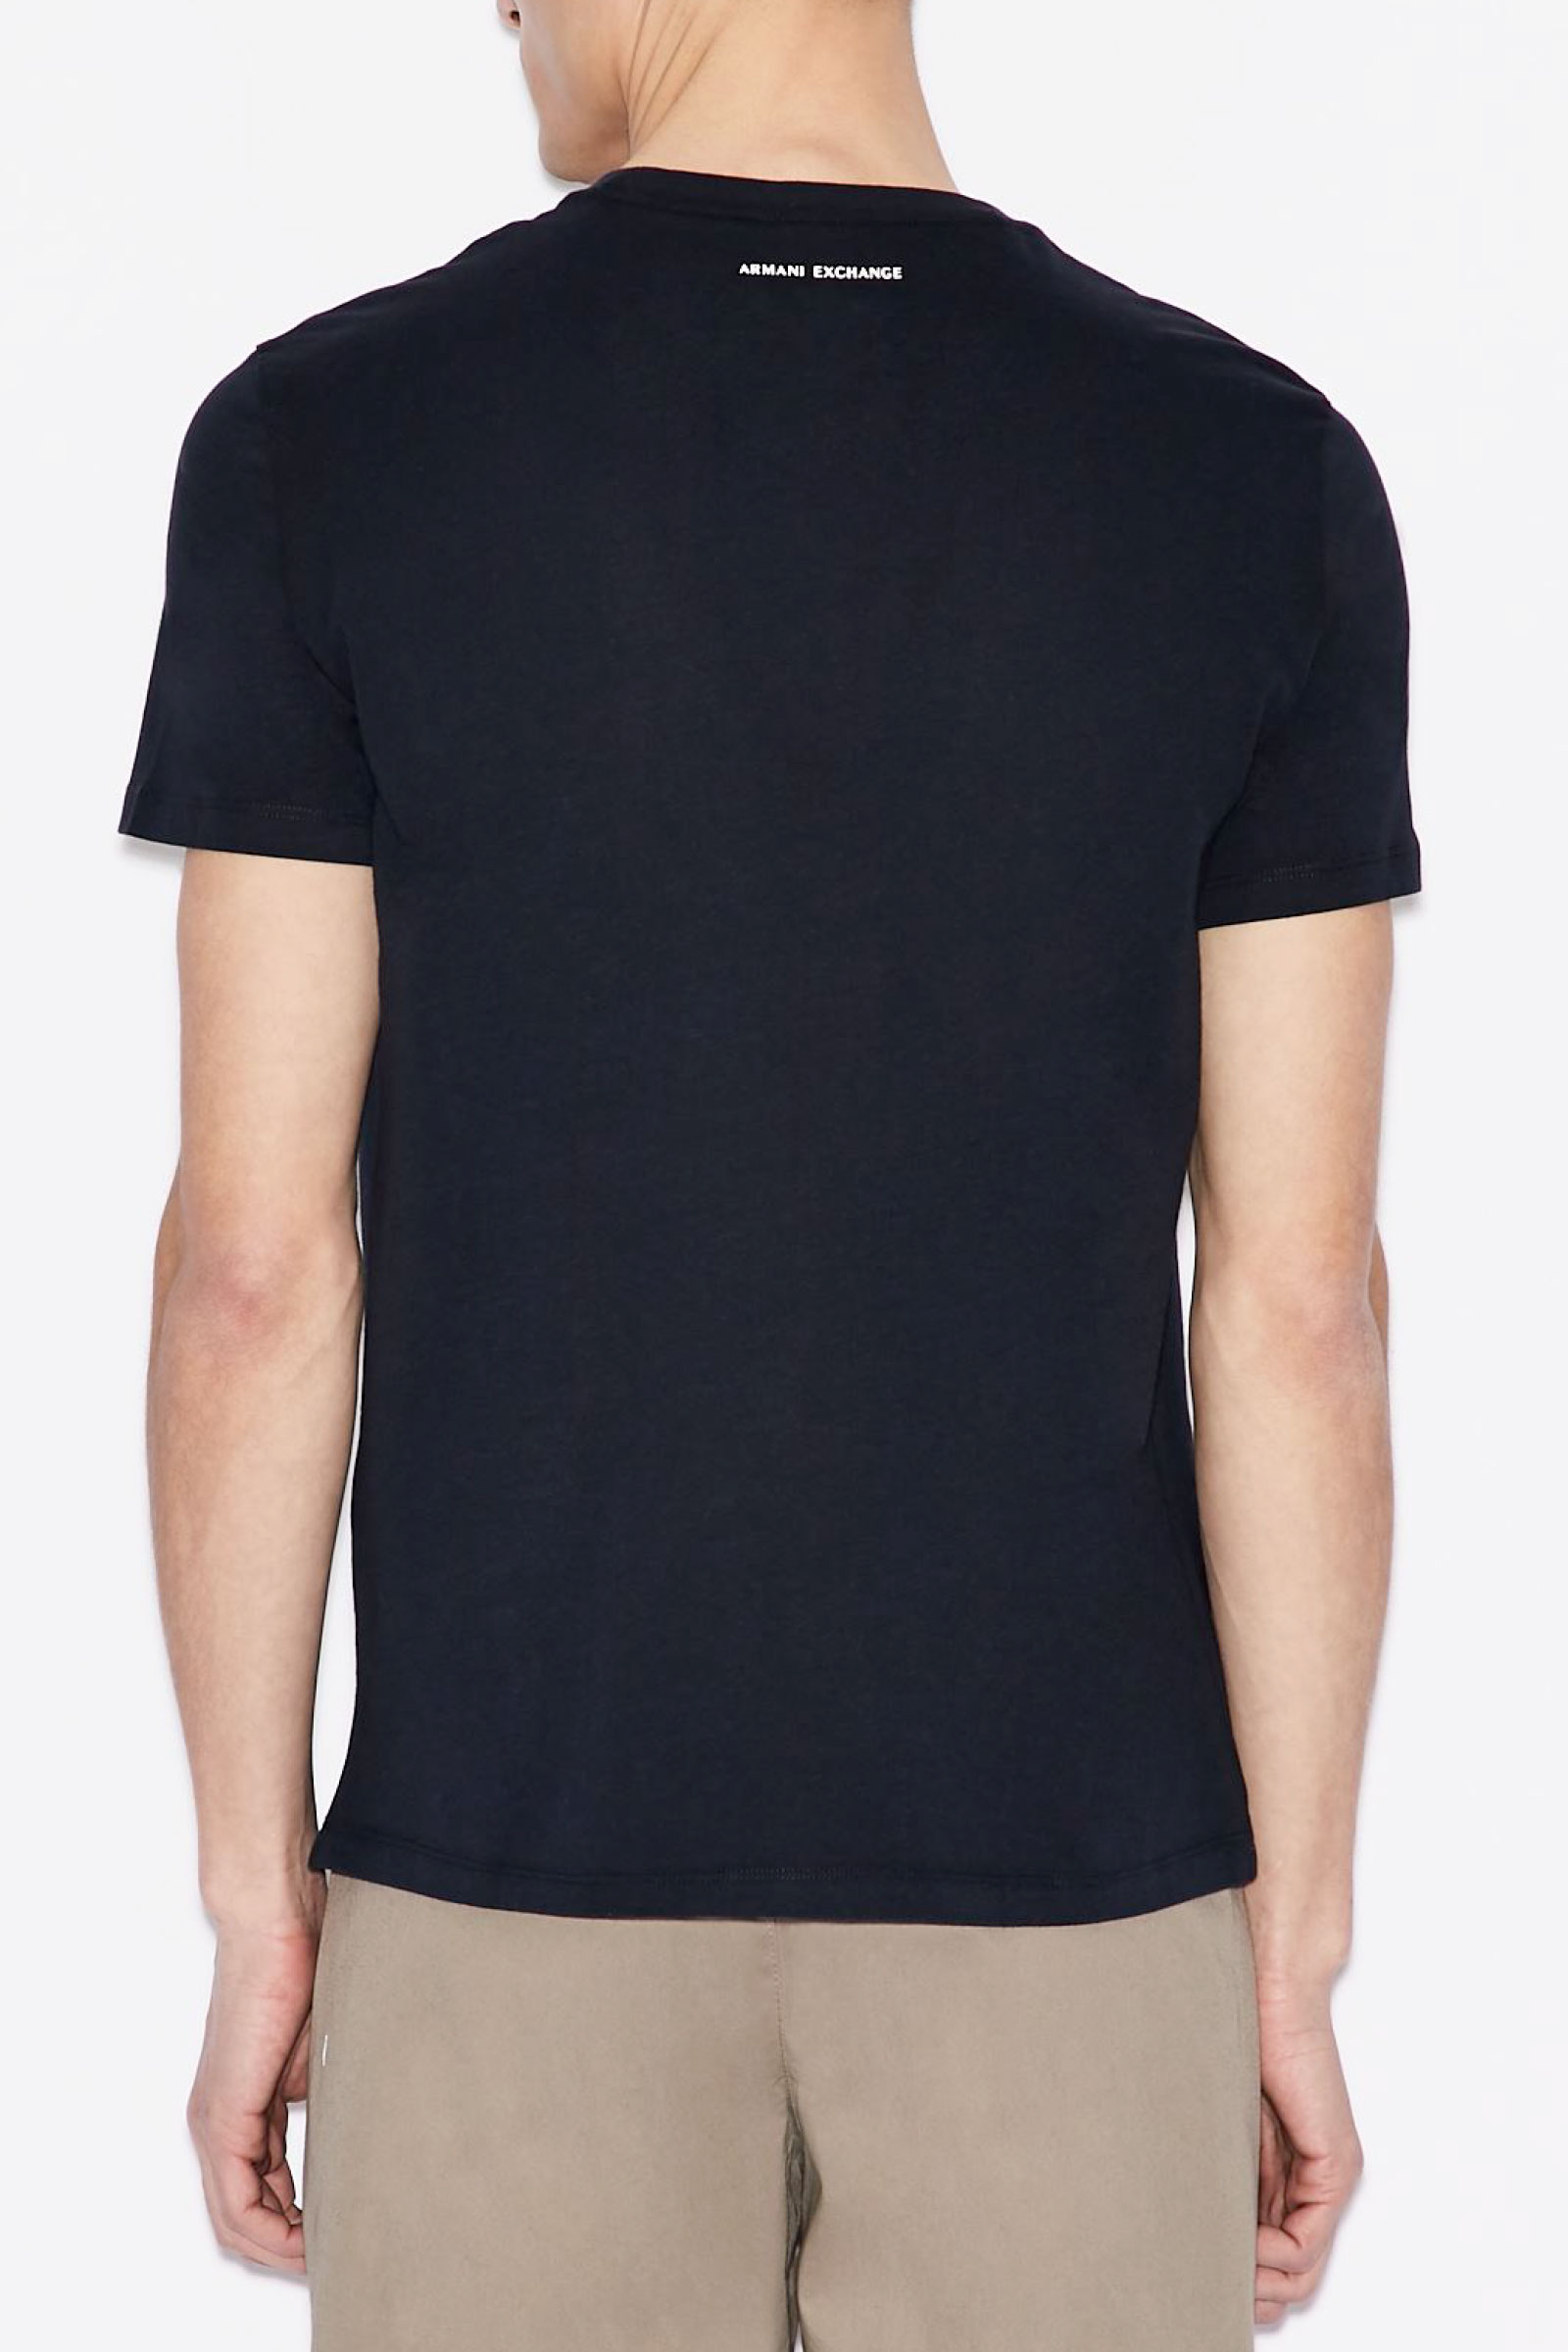 ARMANI EXCHANGE T-Shirt Uomo ARMANI EXCHANGE | T-Shirt | 8NZTCK Z8H4Z1510